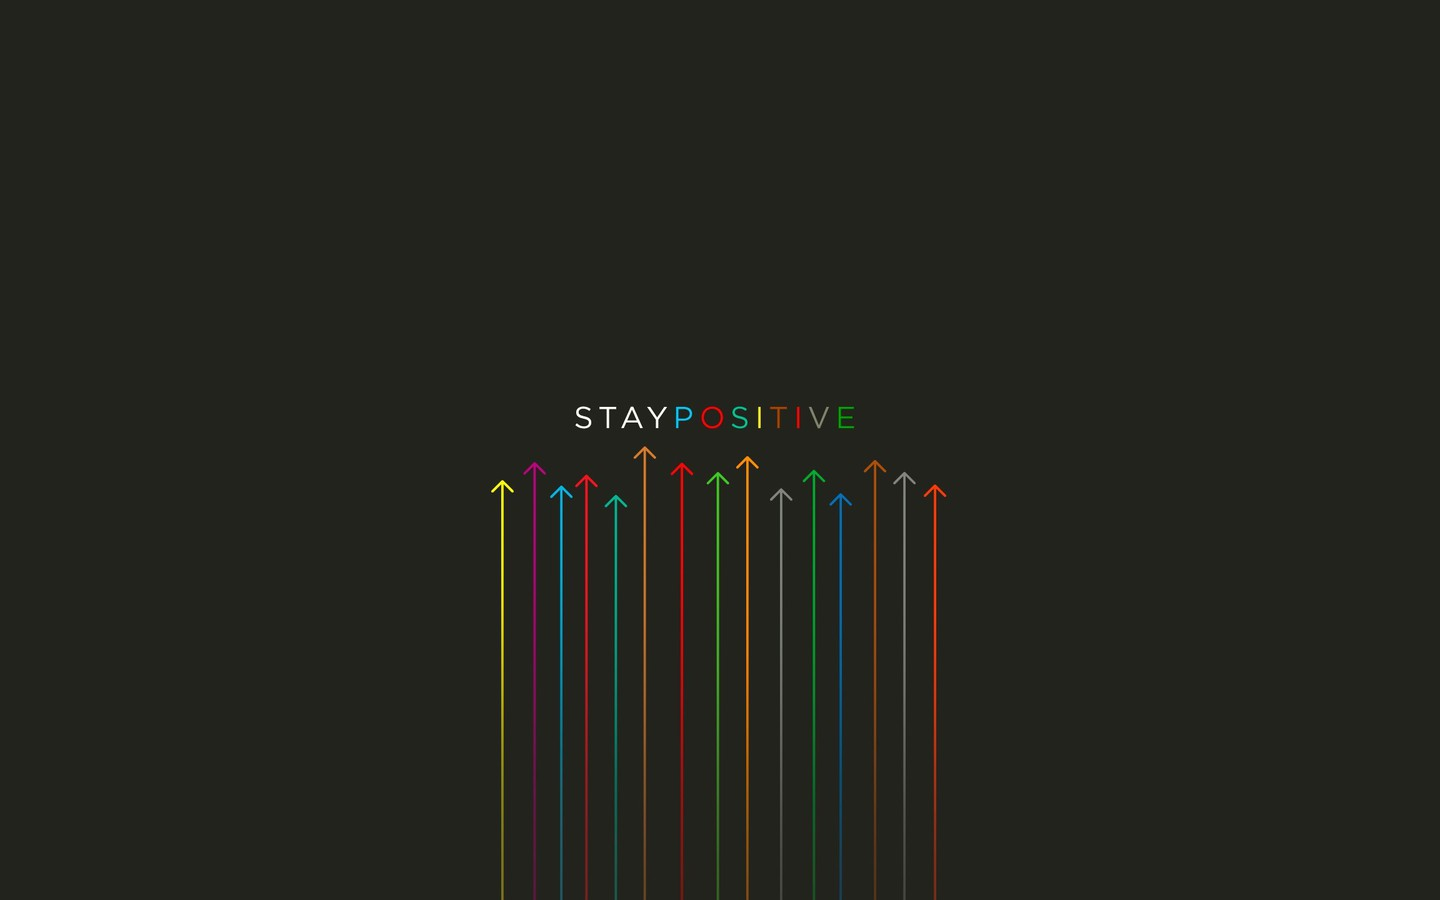 Inspiring Quotes Iphone 5 Wallpaper Inspirational Minimalistic Multicolor Posters Wallpaper